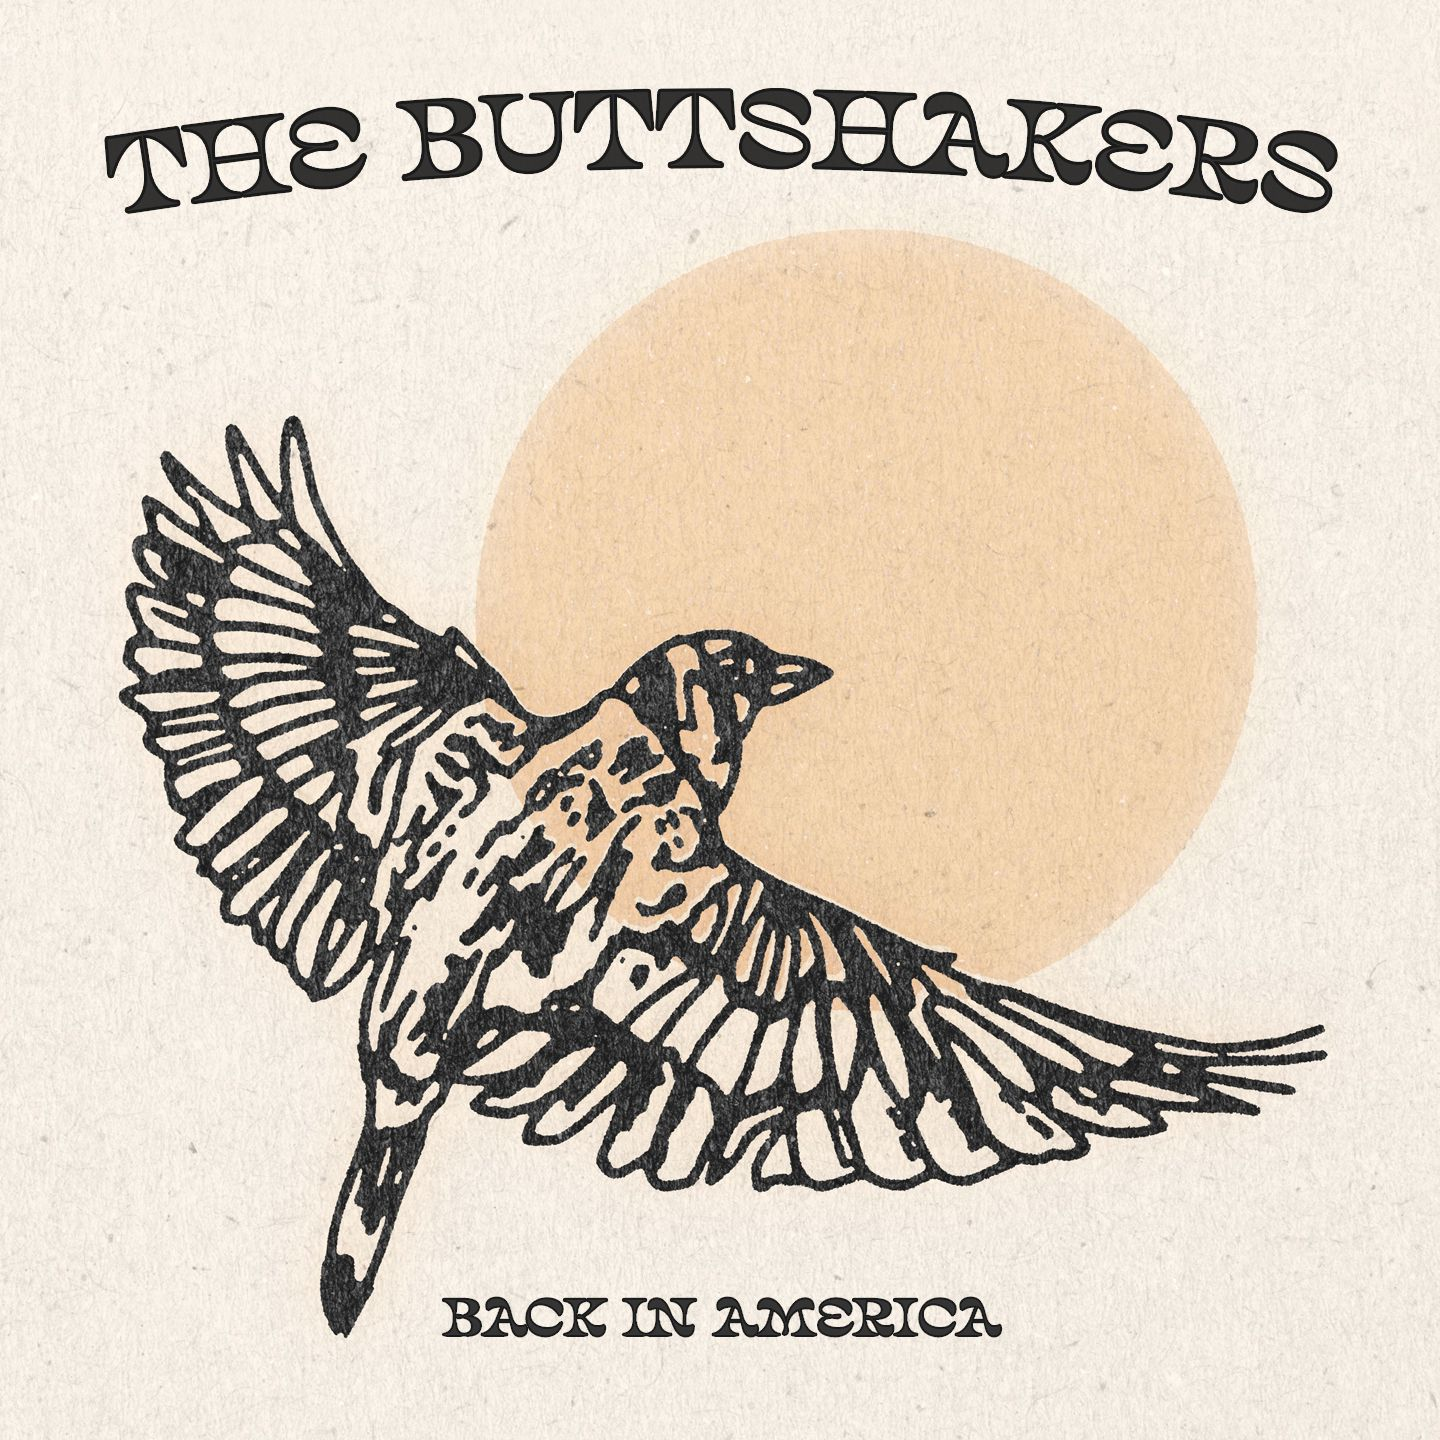 The Buttshakers - Back In America, Underdog Records, Plaisir Culturel